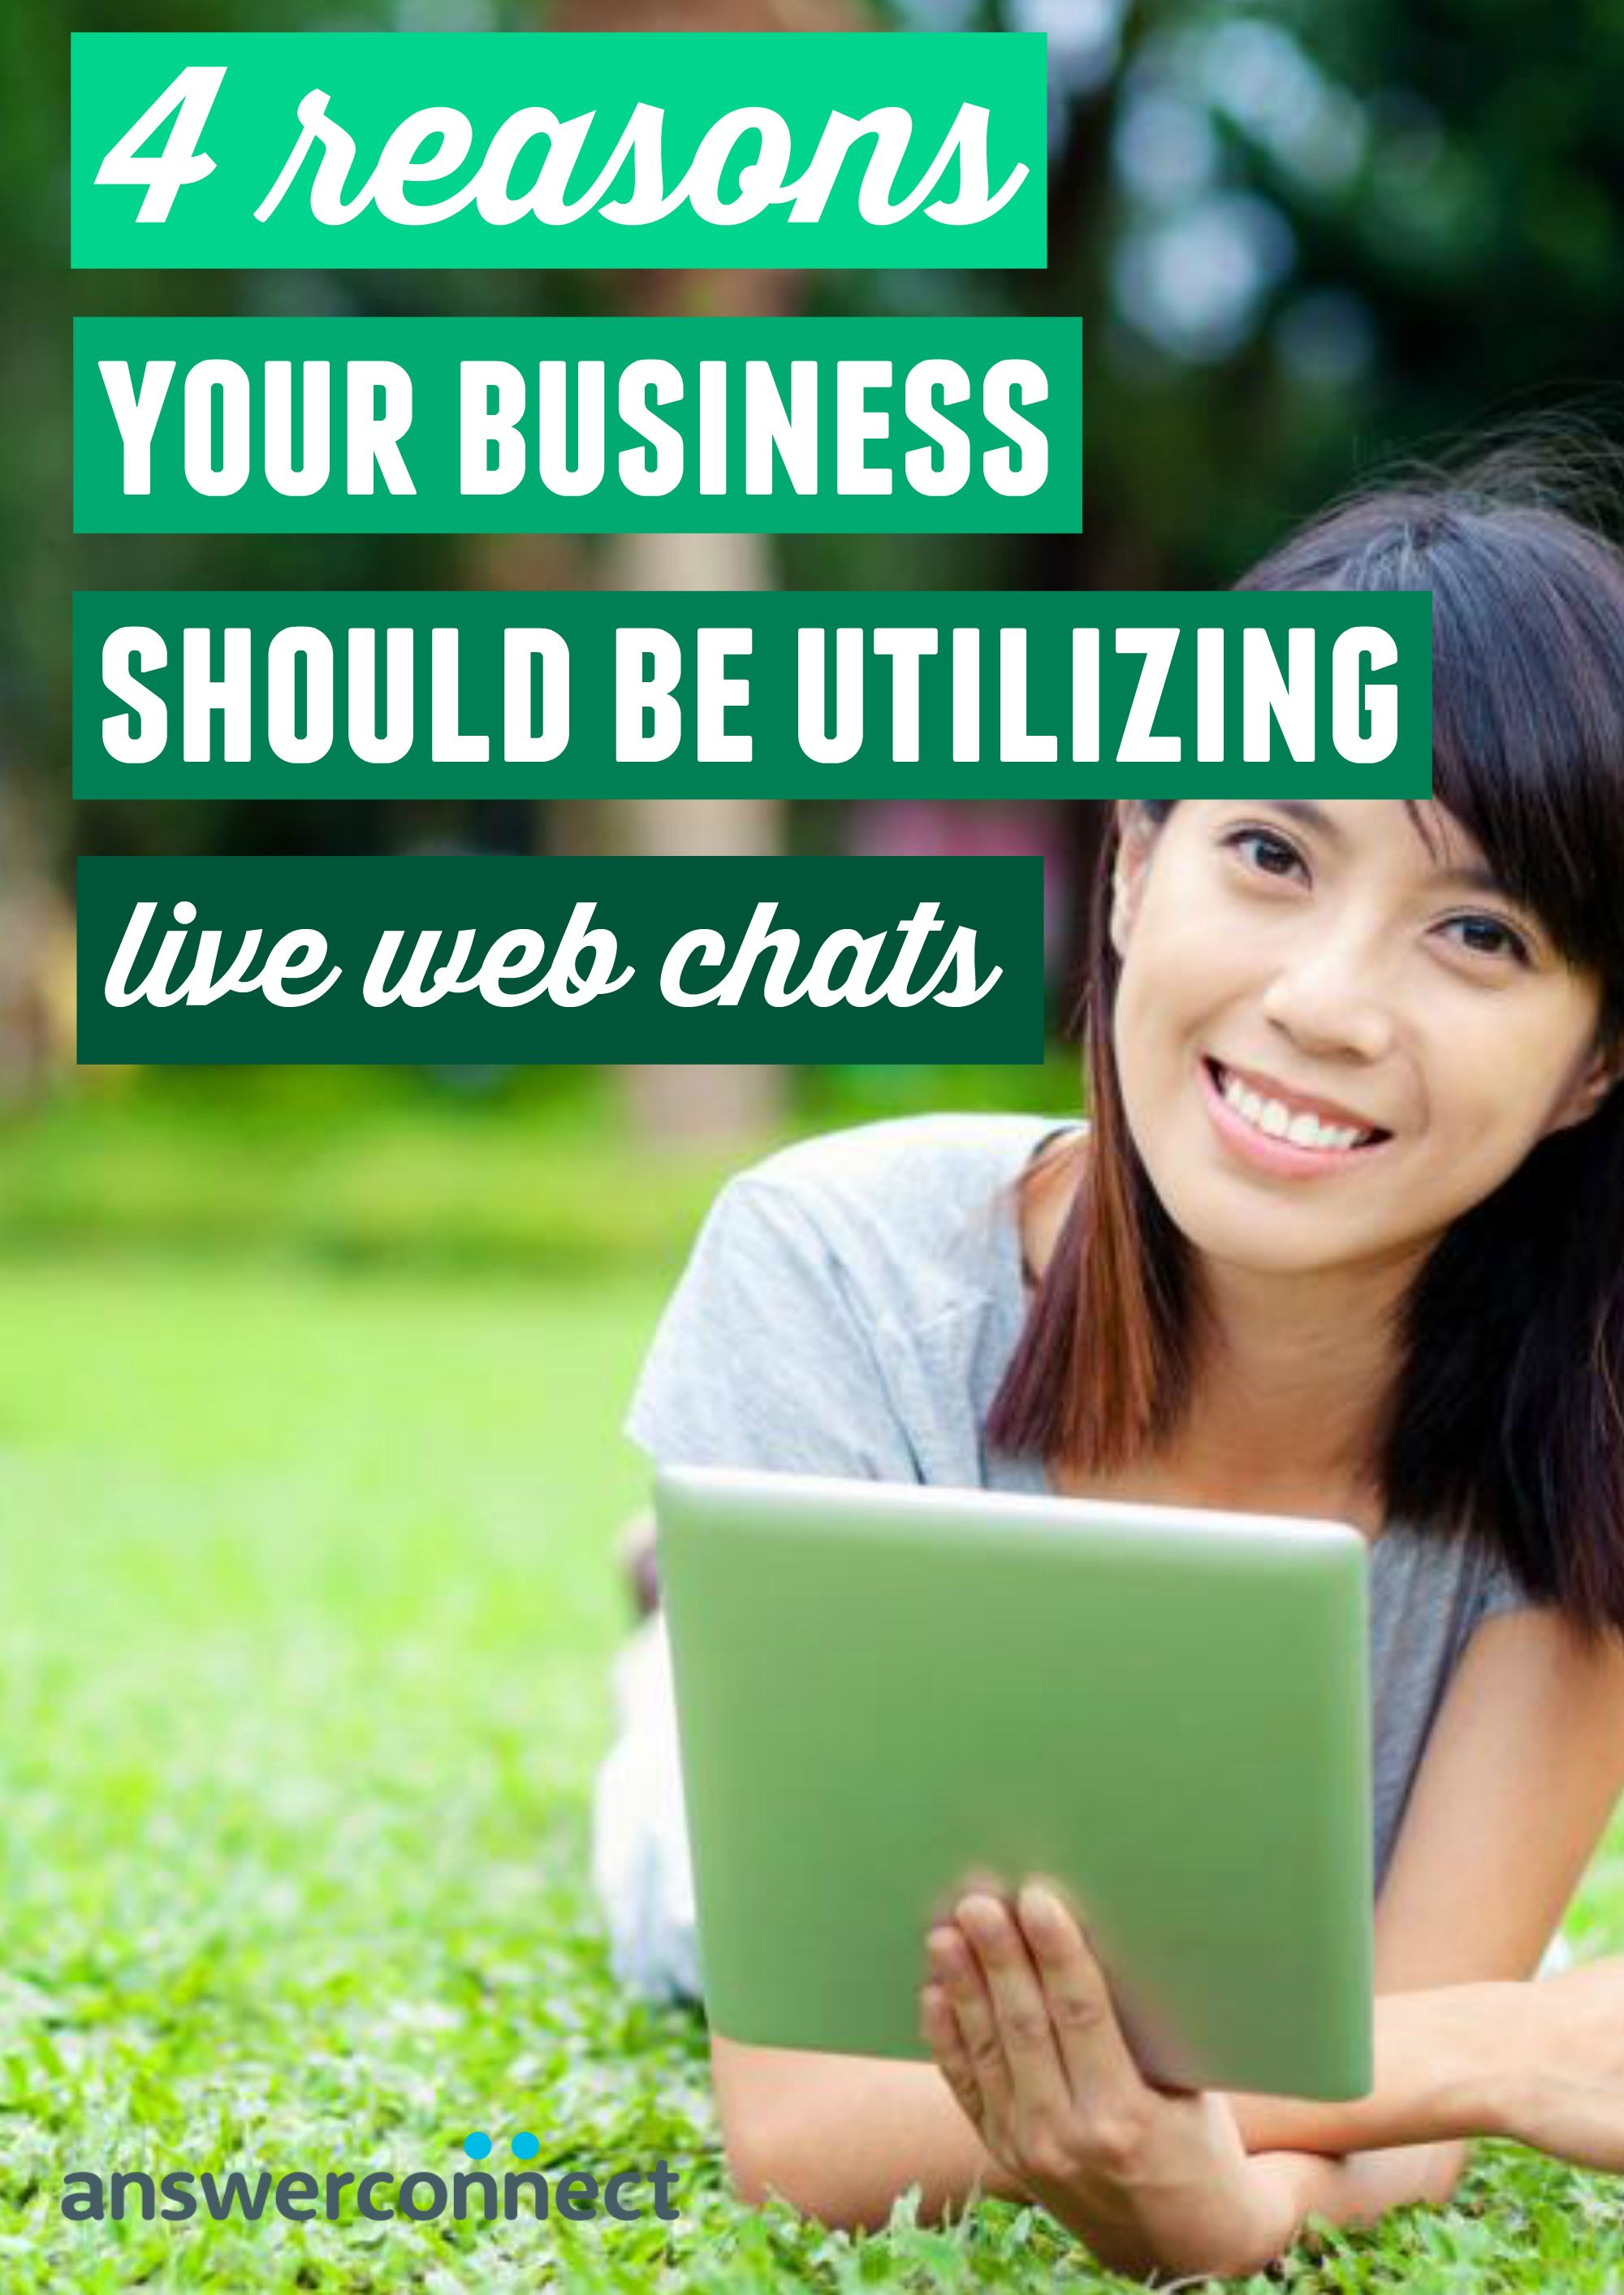 4 Reasons Why Your Business Should Offer Live Web Chats